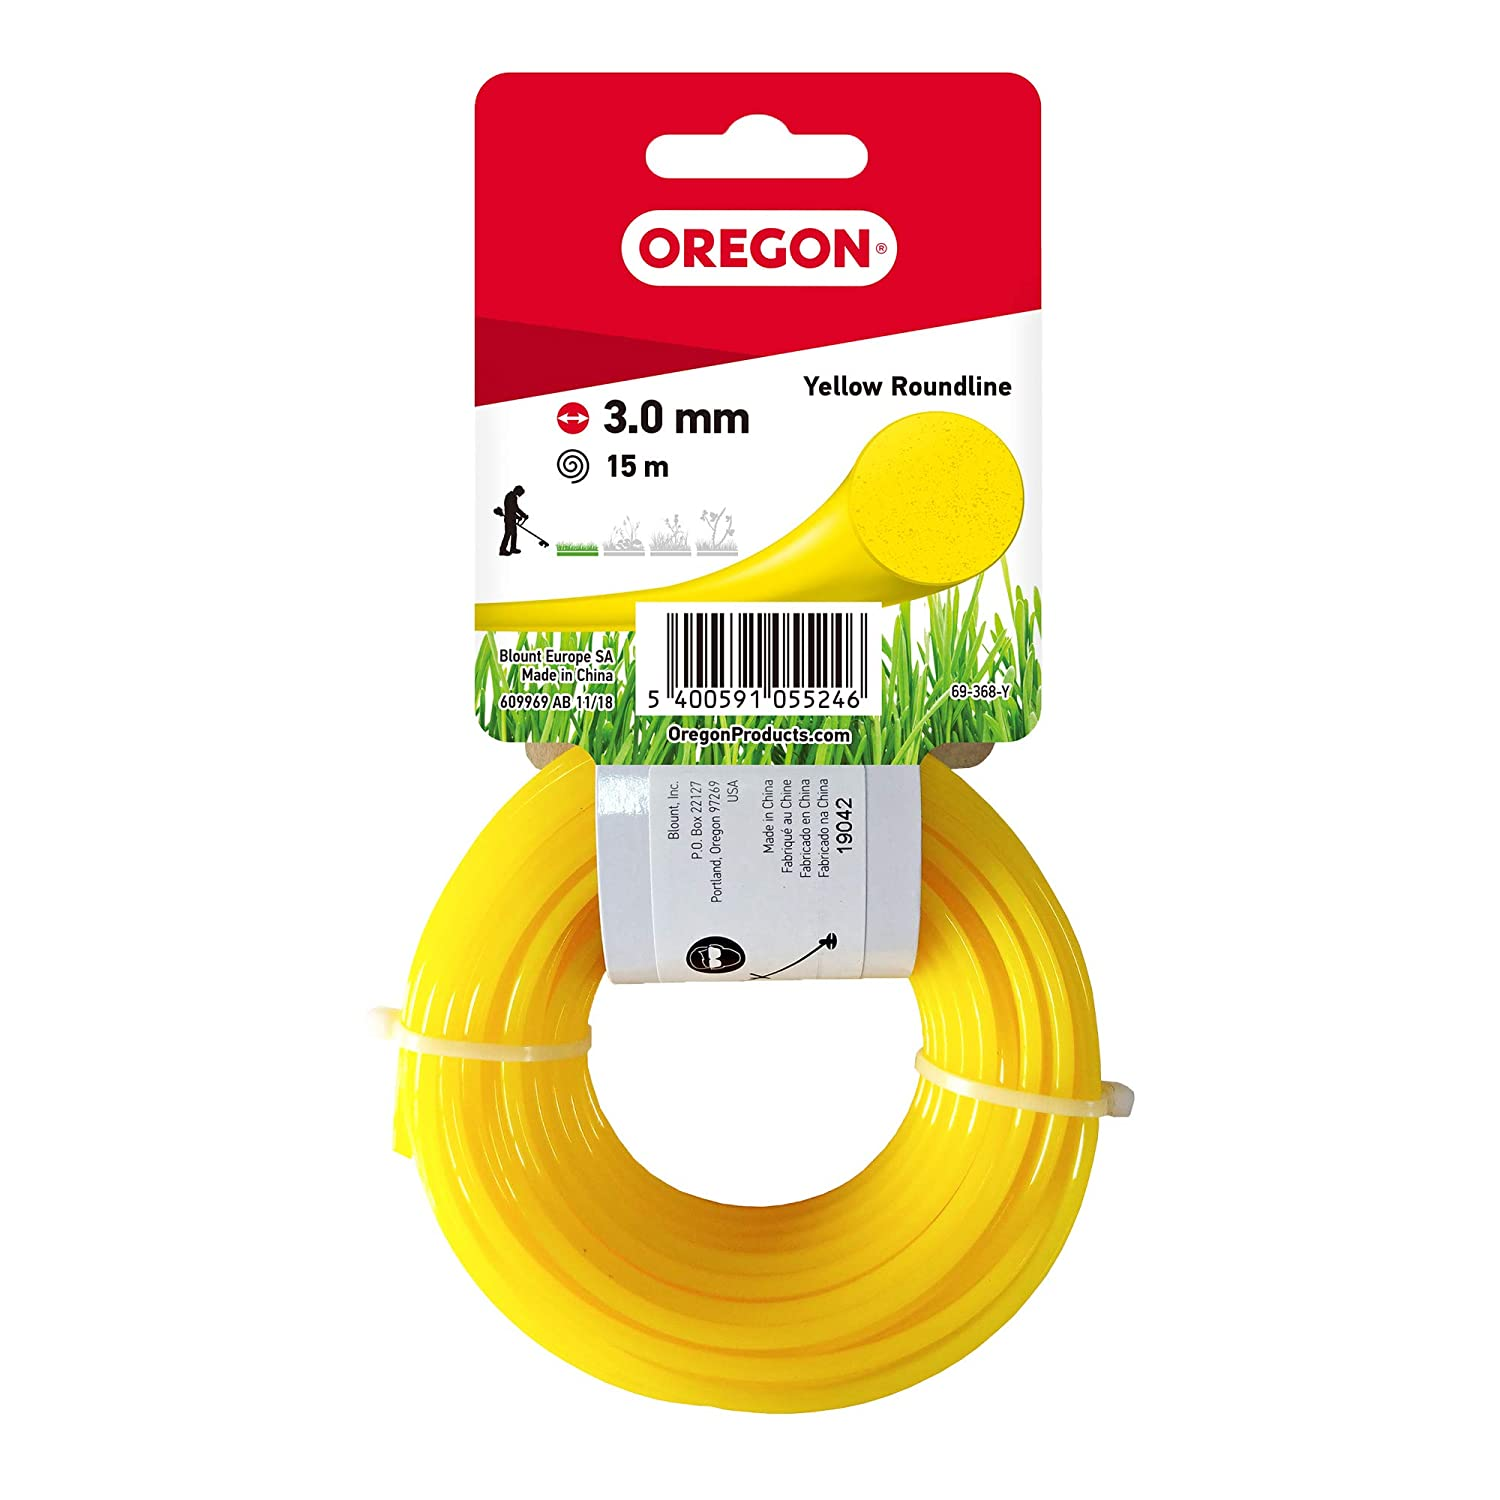 1.7mm x 15m 1.7 mm x 15 m Blue Oregon 69-350-BL Round Strimmer Line//Wire for Grass Trimmers